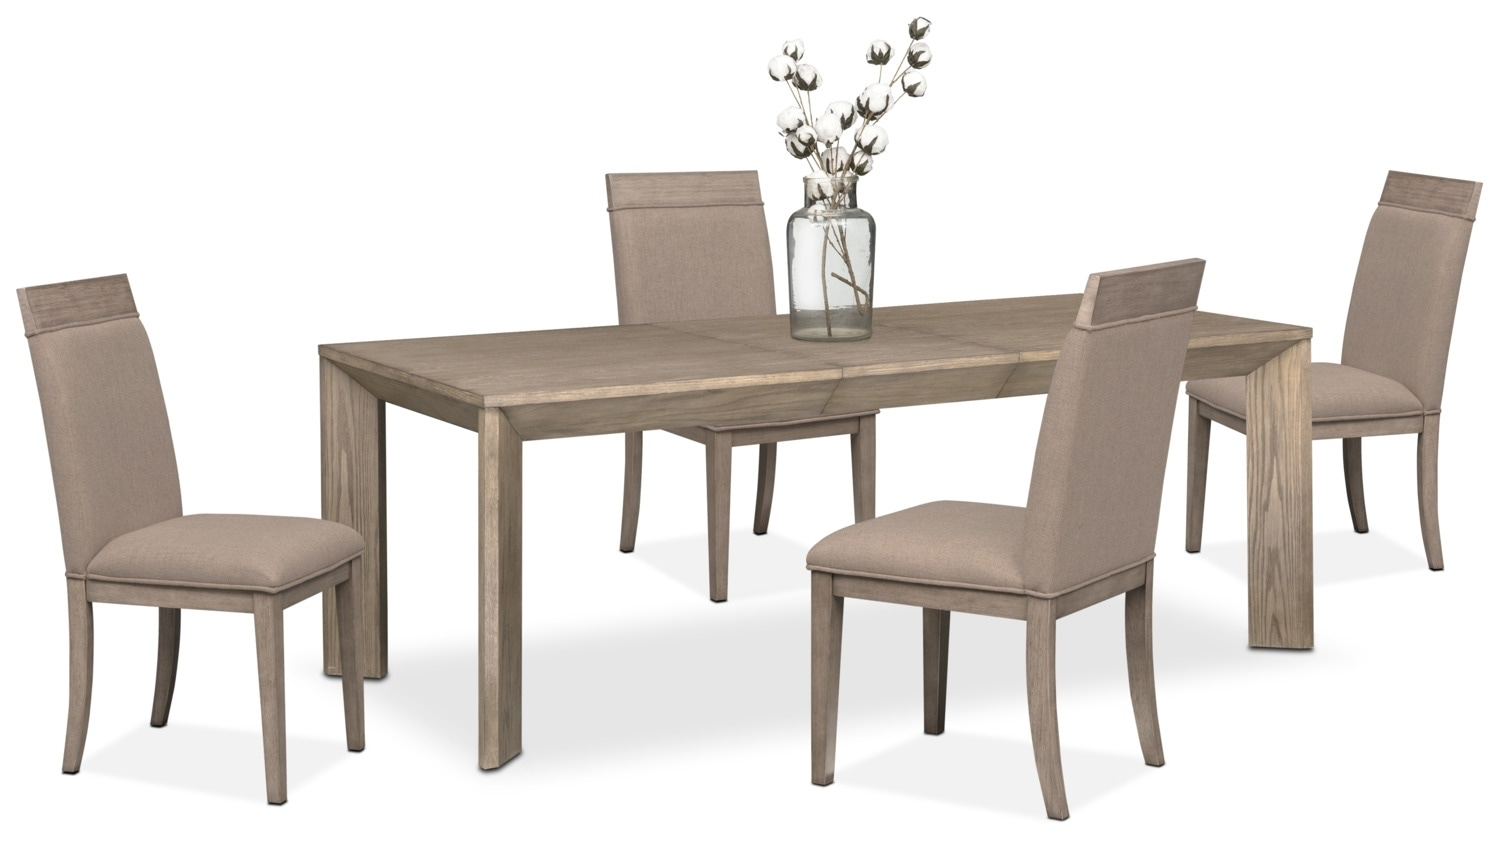 Gavin Table And 4 Side Chairs – Graystone | American Signature Furniture Regarding 2018 Gavin 7 Piece Dining Sets With Clint Side Chairs (Photo 6 of 20)